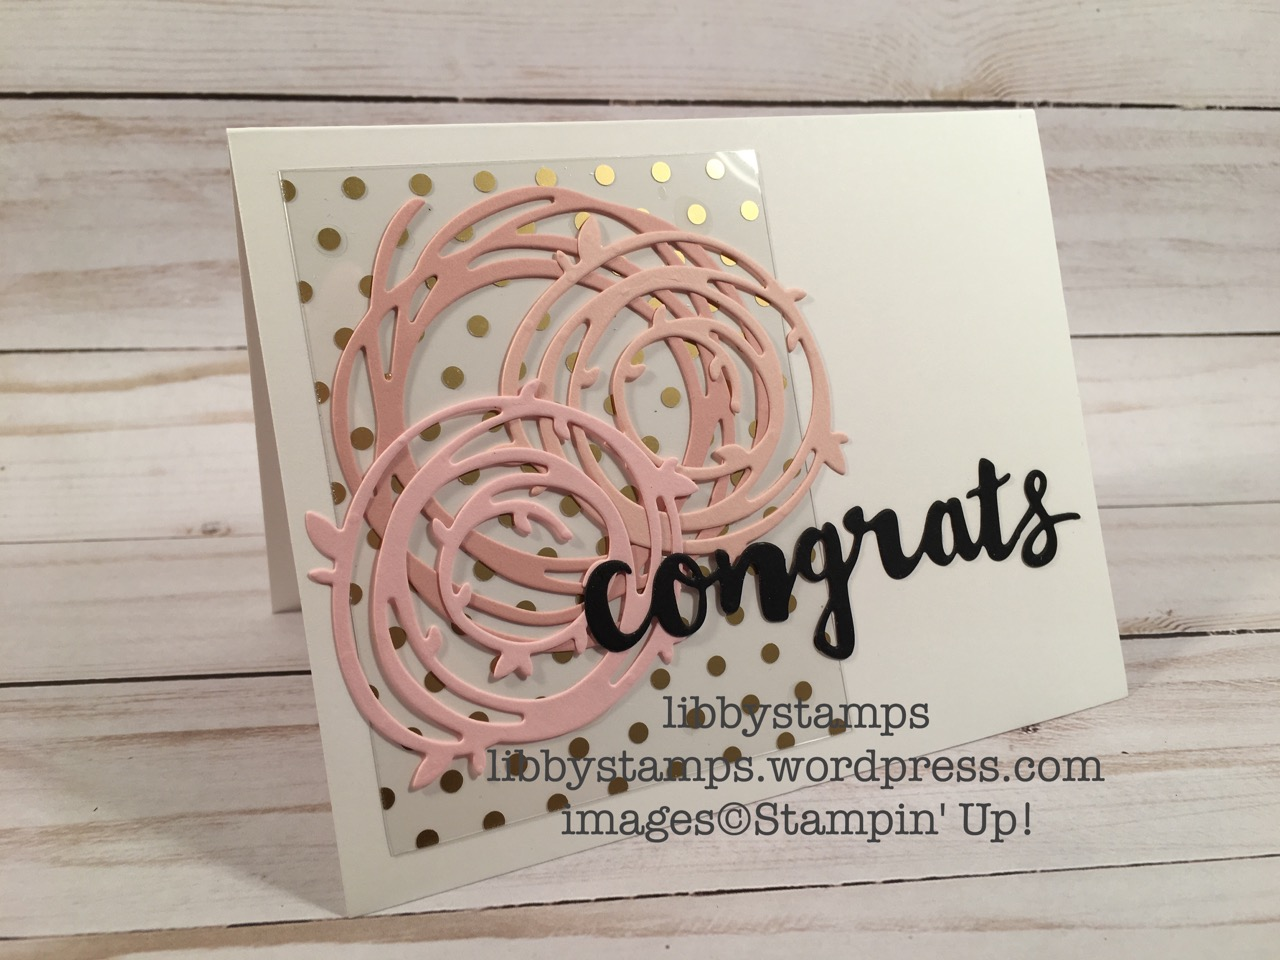 libbystamps, stampin up, Swirly Scribbles Thinlits, Sunshine Wishes Thinlits, Fabulous Foil Designer Acetate Sheets